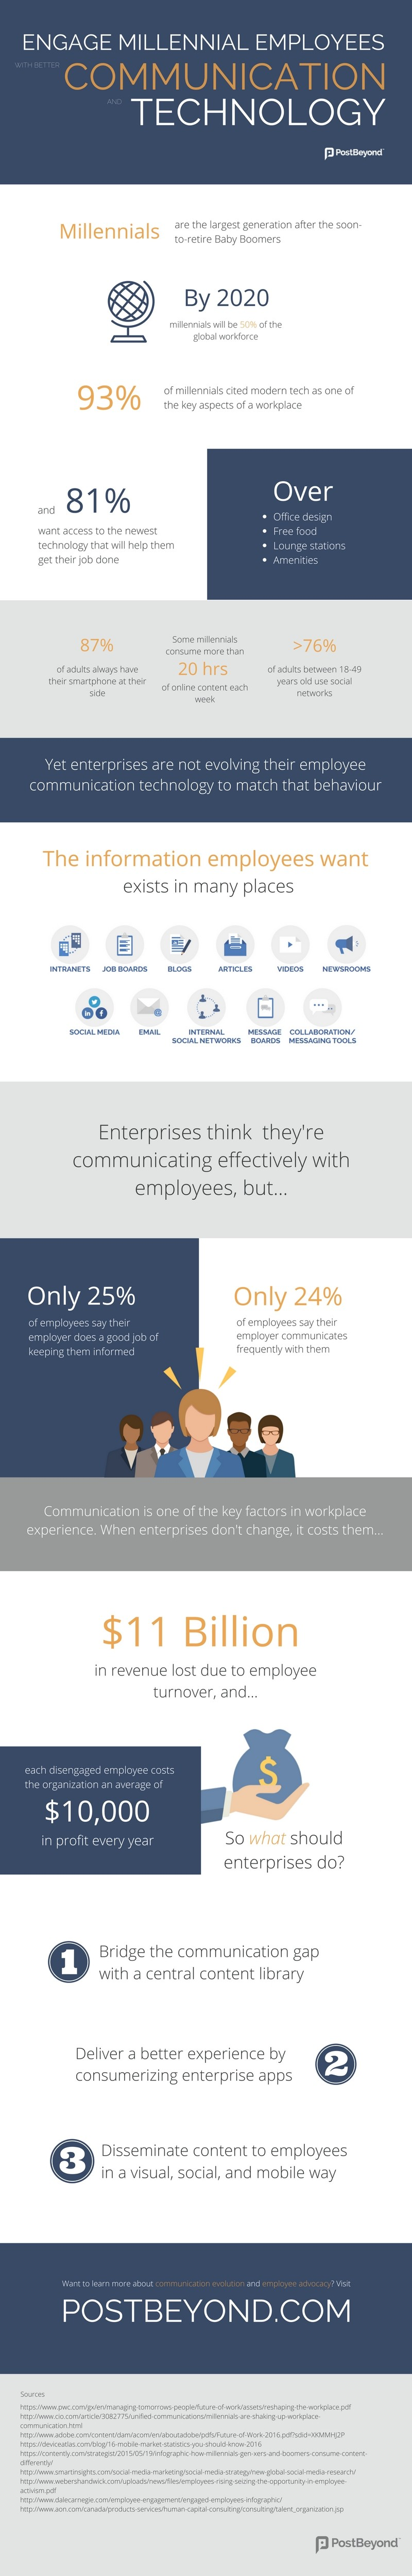 Engage Millennial Employees Communication Technology